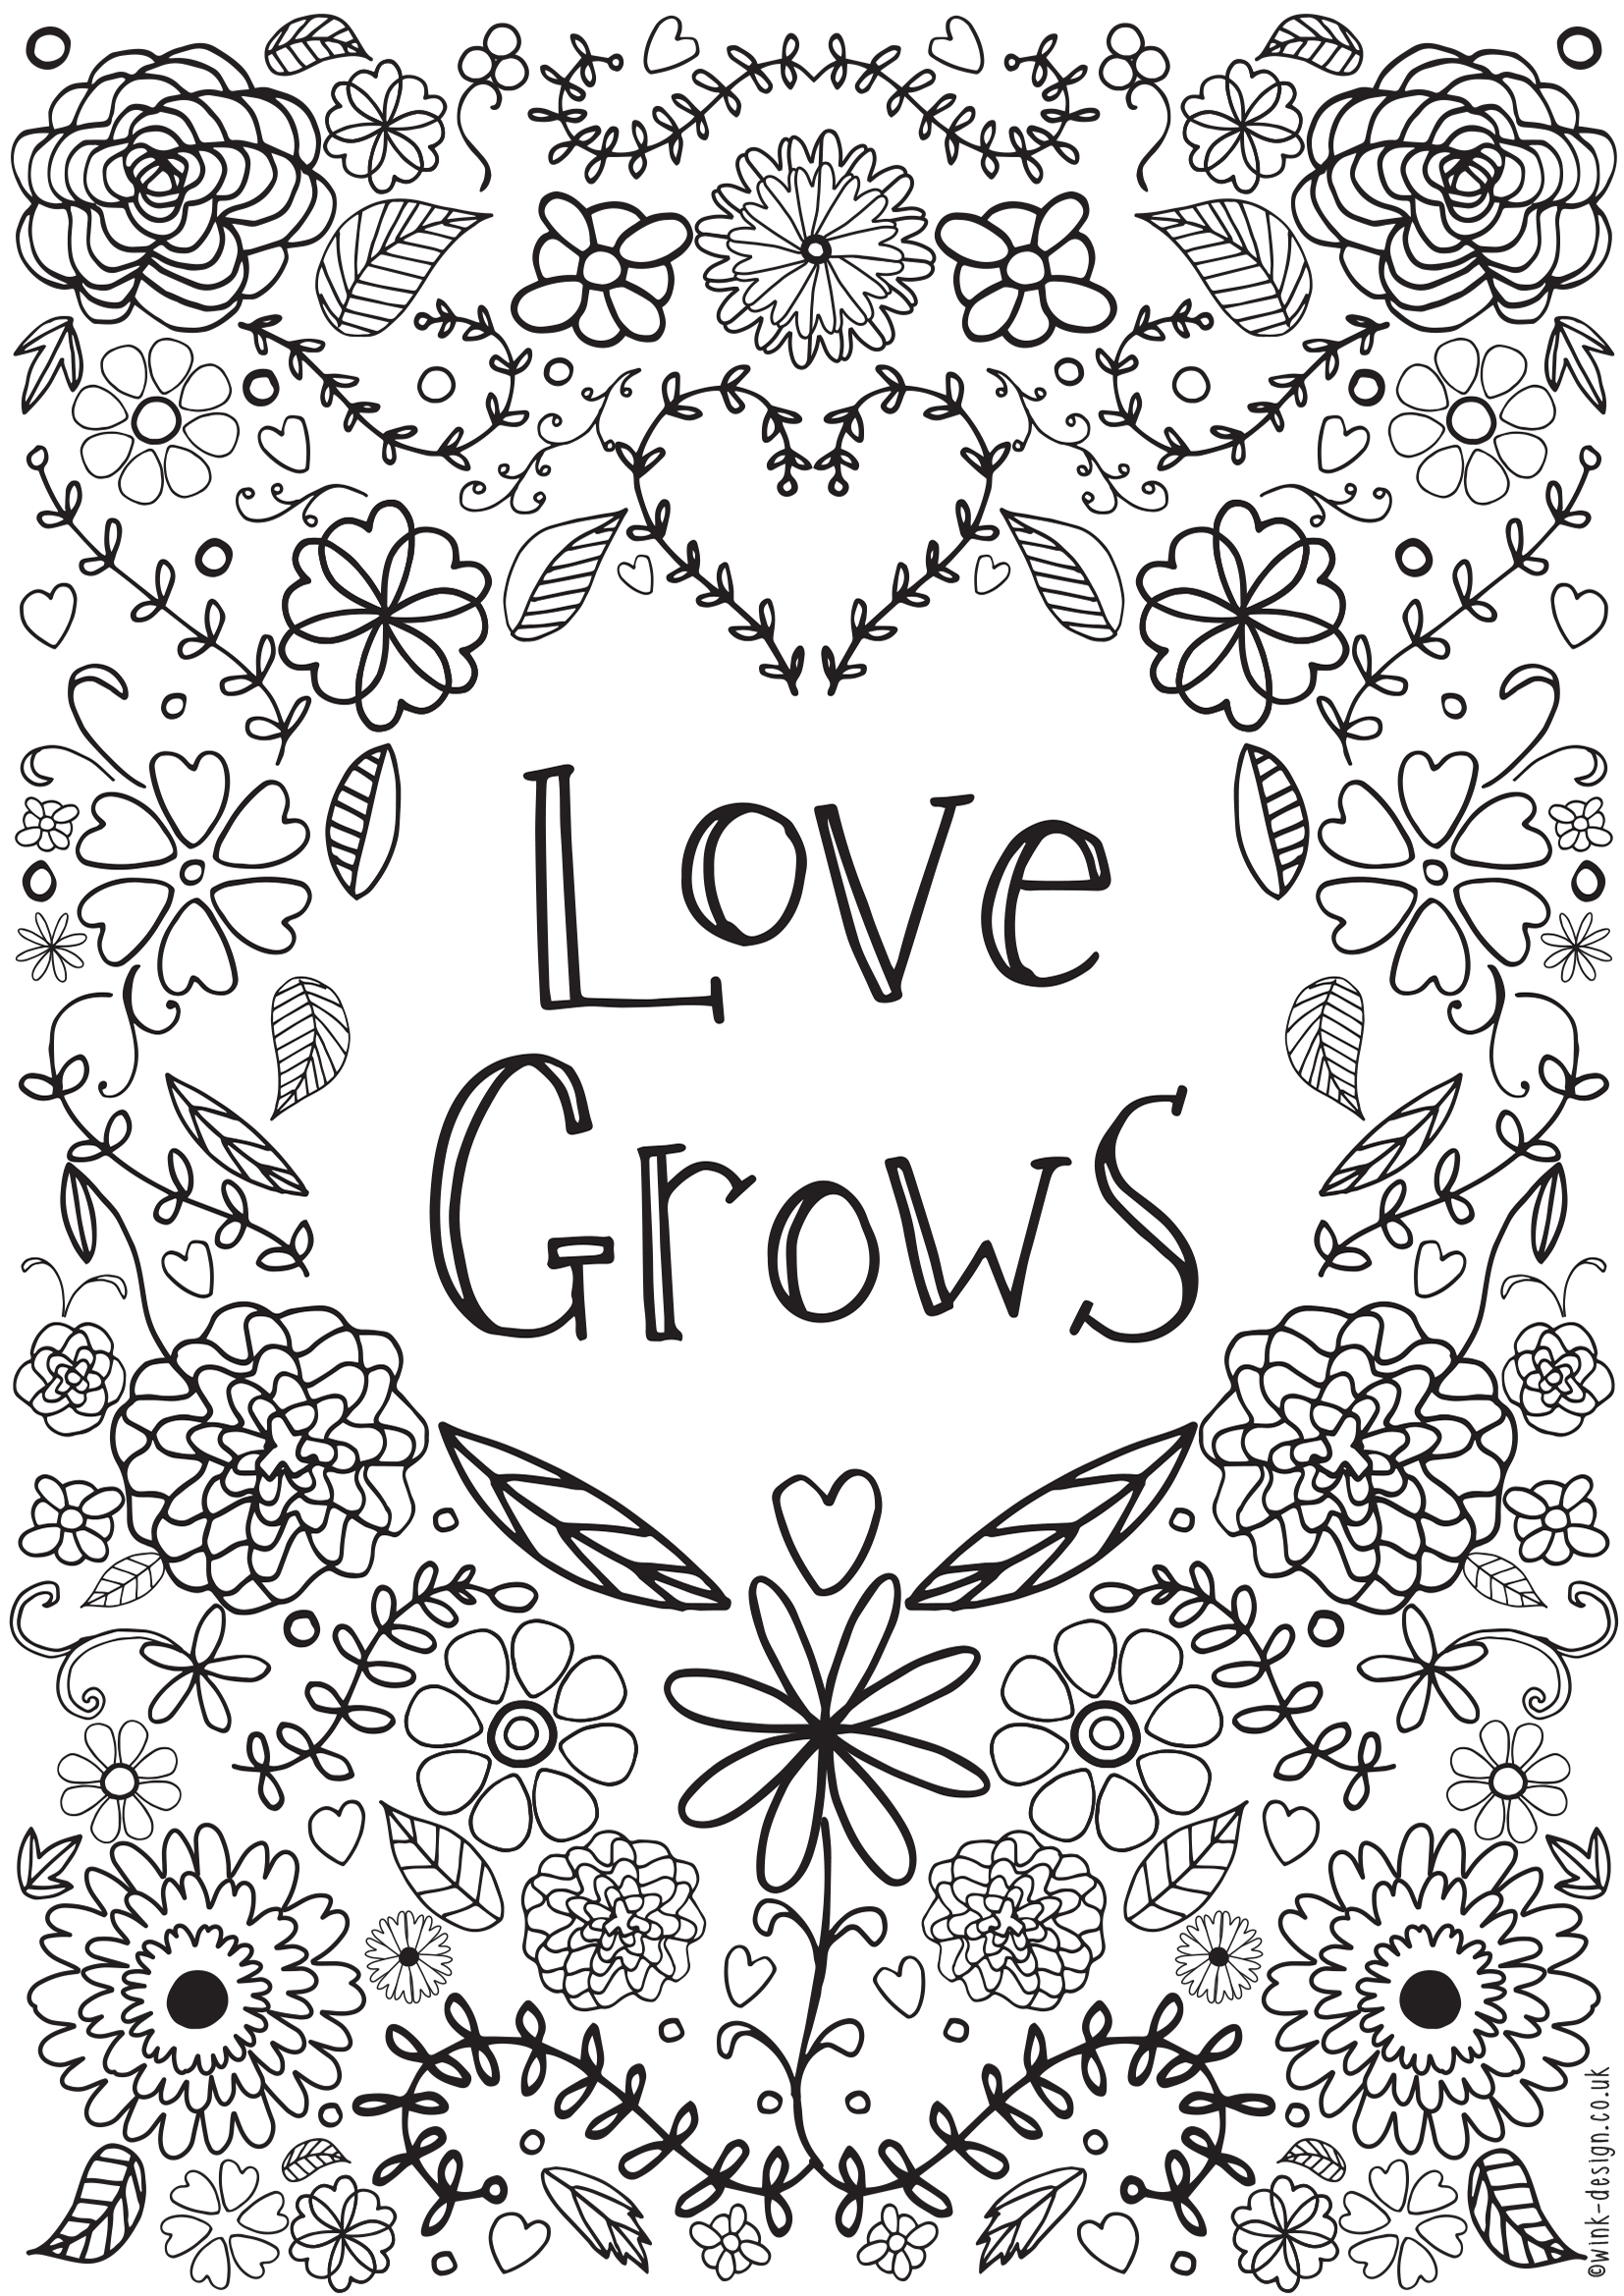 free printable inspirational coloring pages - free printable adult colouring pages with inspirational quotes